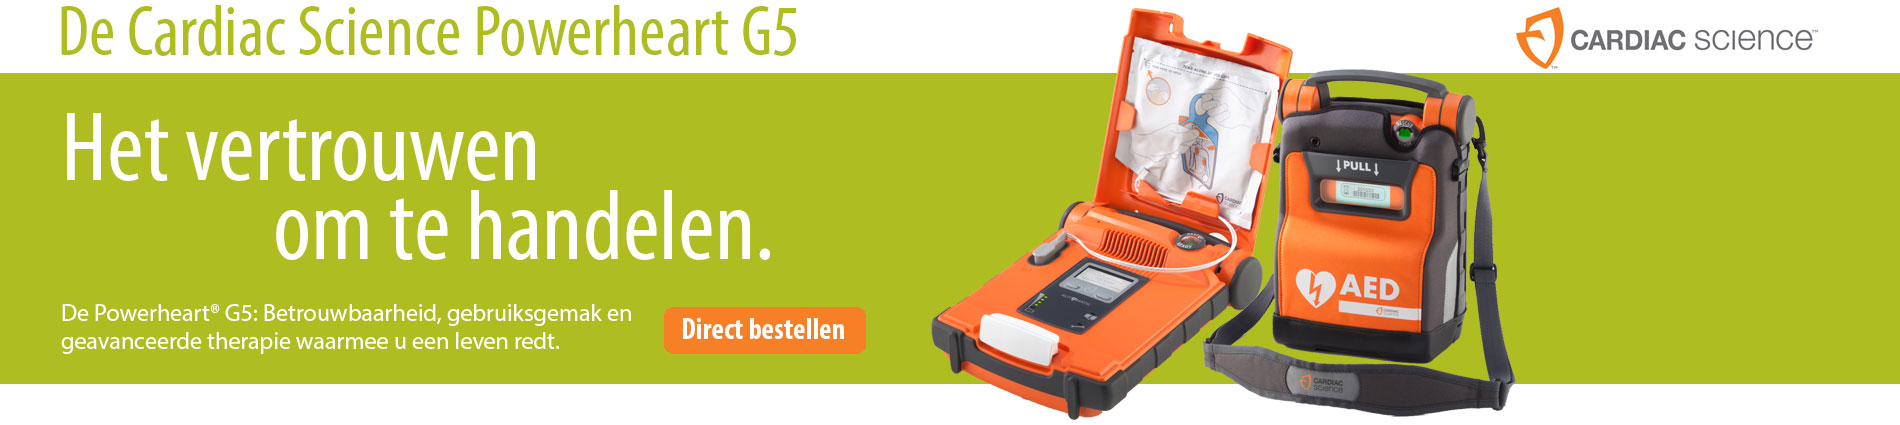 De nieuwe Cardiac Science Powerheart G5